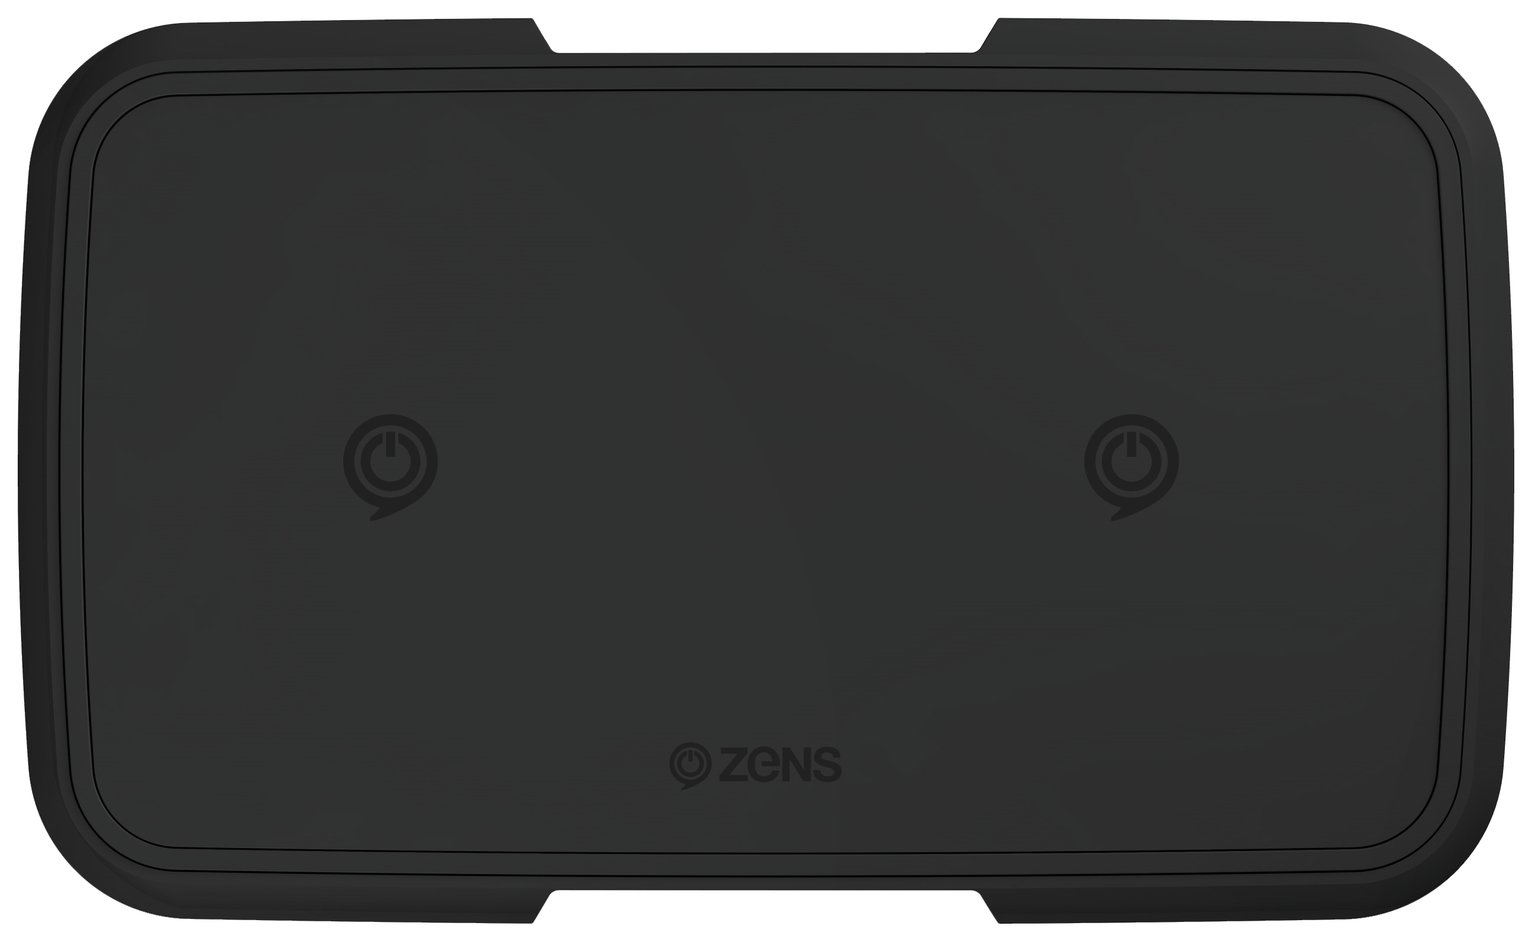 Zens Dual Watch 9000mAh Wireless Portable Power Bank - Black